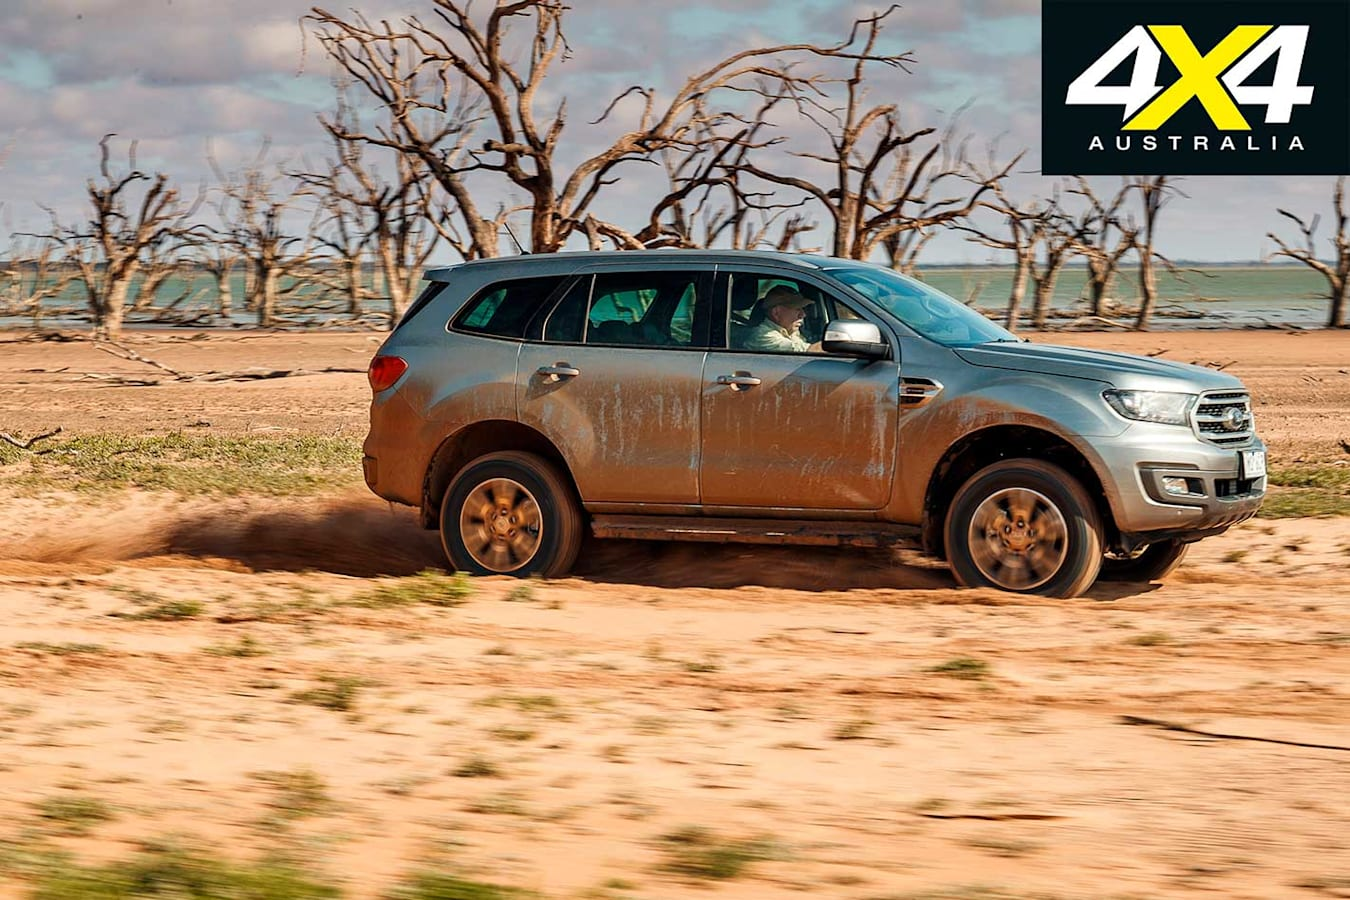 2019 4 X 4 Of The Year Ford Everest Trend Touring Jpg